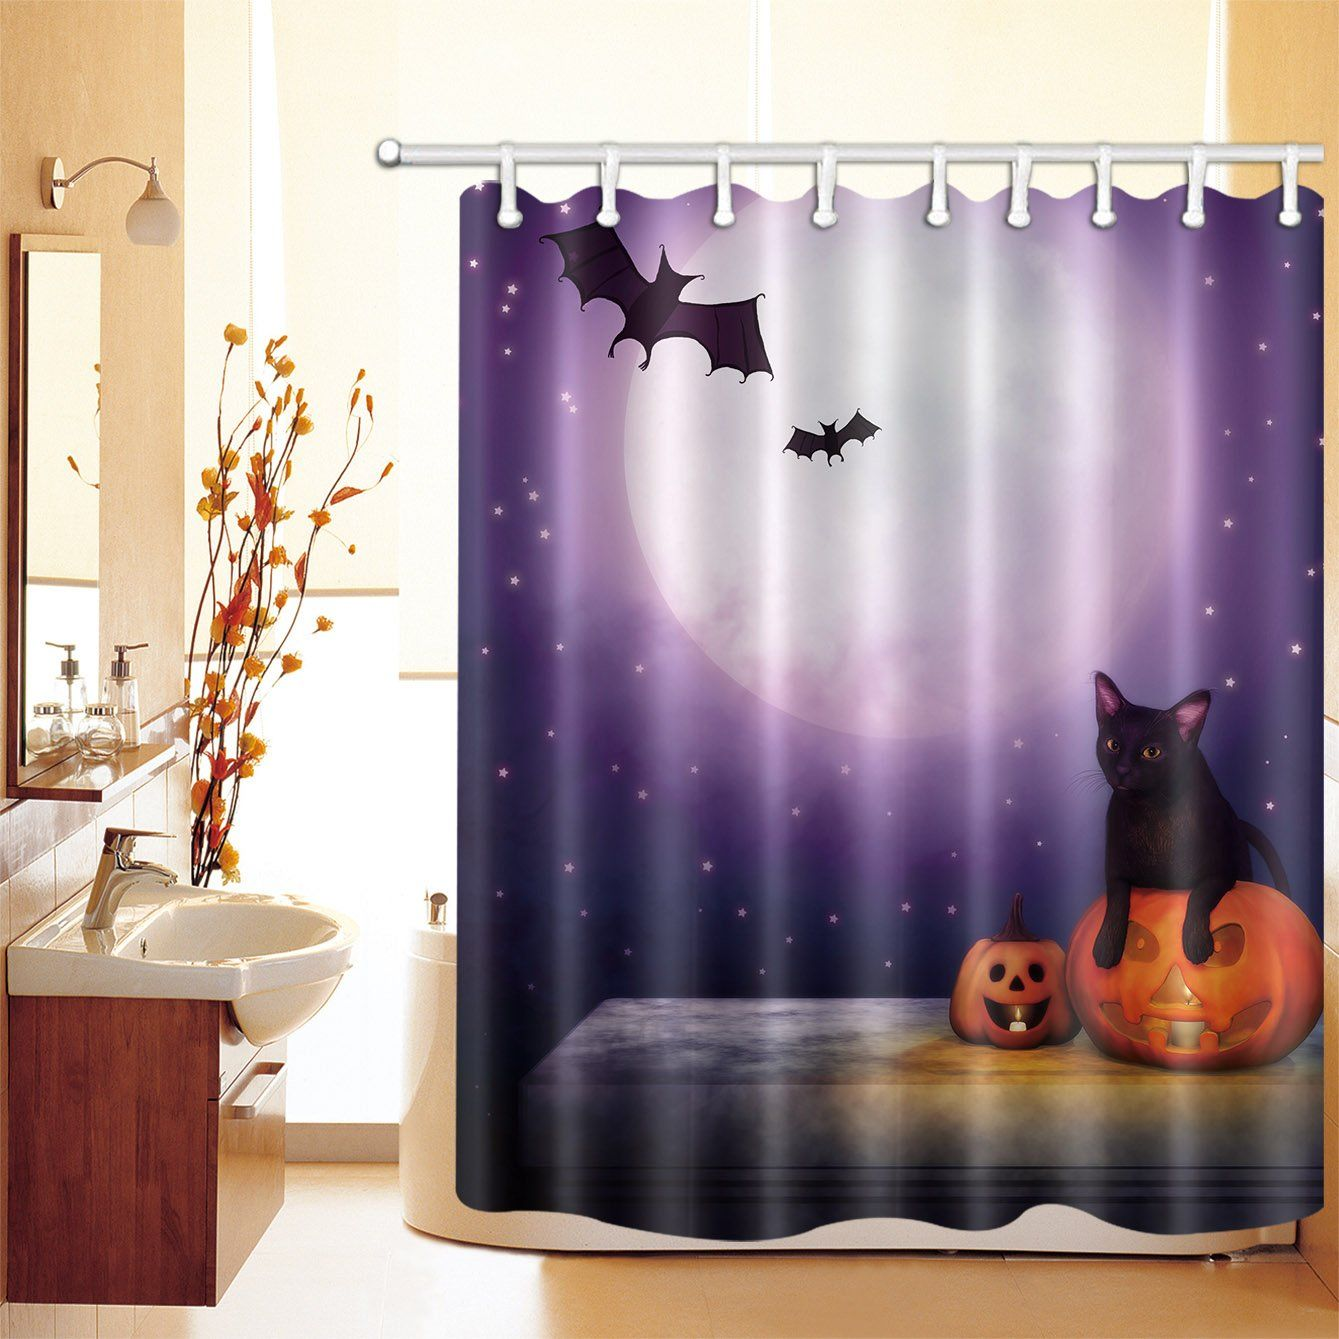 Lb Black Cat Bat Pumpkin Scary Night Shower Curtain Set Spooky